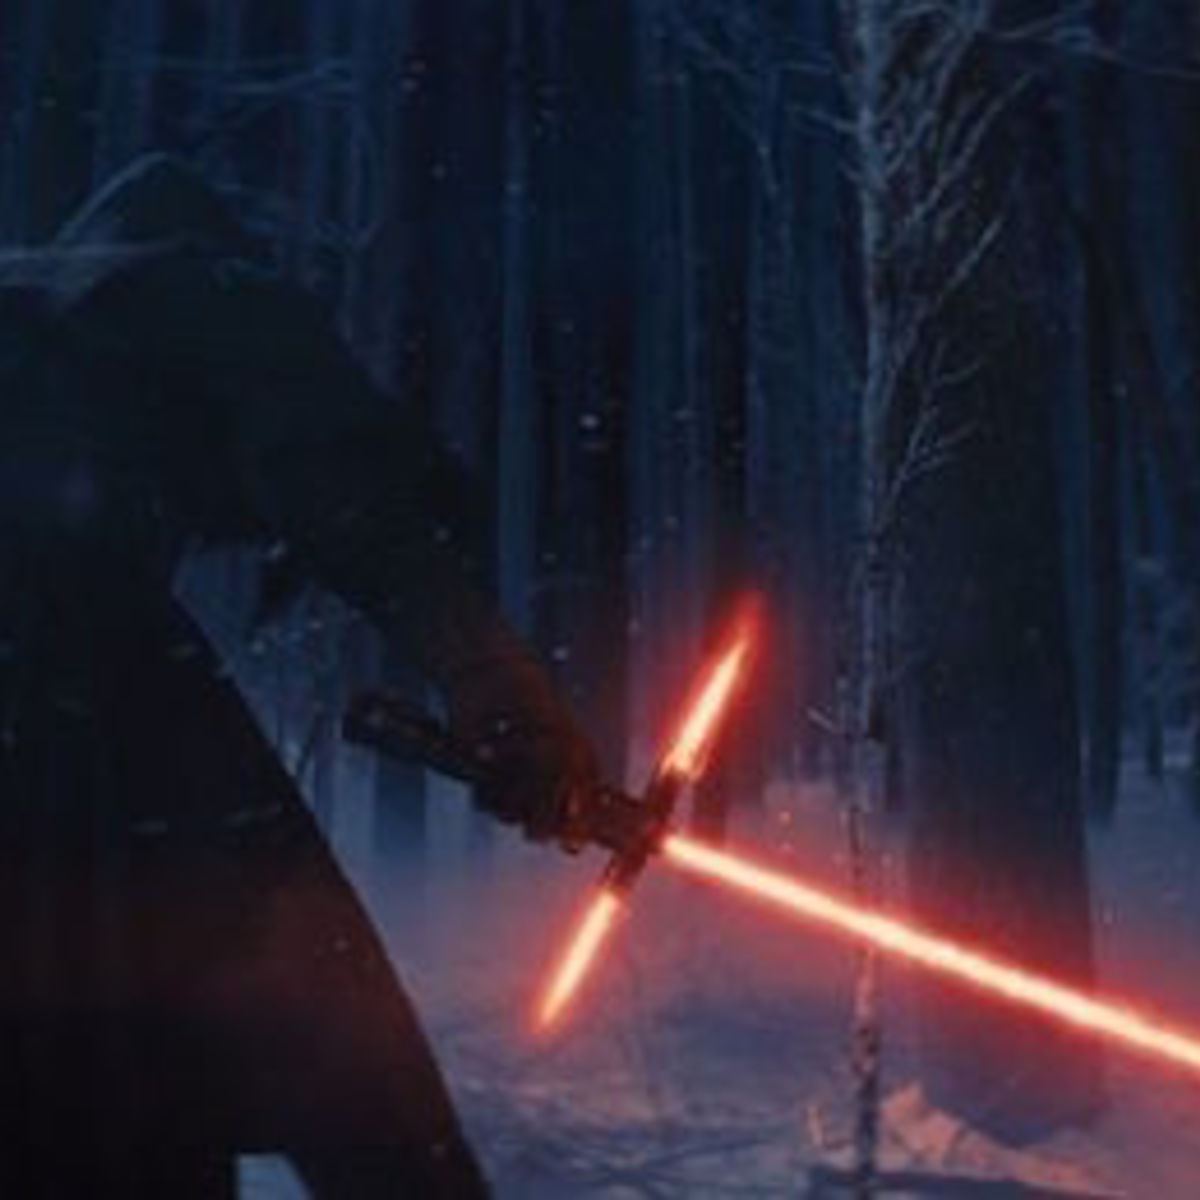 Star-Wars-7-The-Force-Awakens-Sith-Lightsaber-Photo-1024x429.jpg